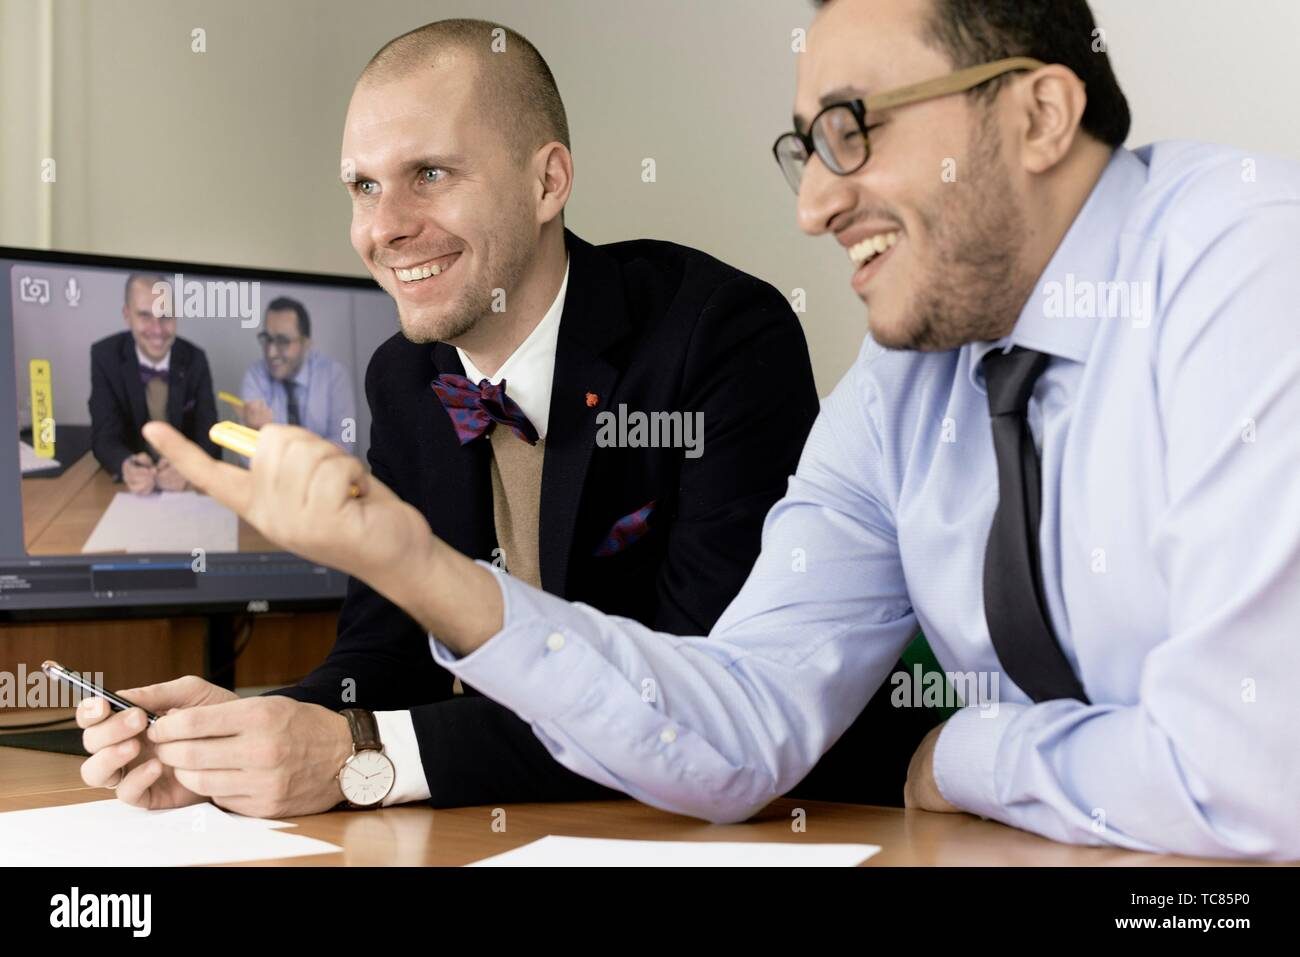 happy business men at conference, lawyers consulting at online live stream, in Cottbus, Brandenburg, Germany - Stock Image